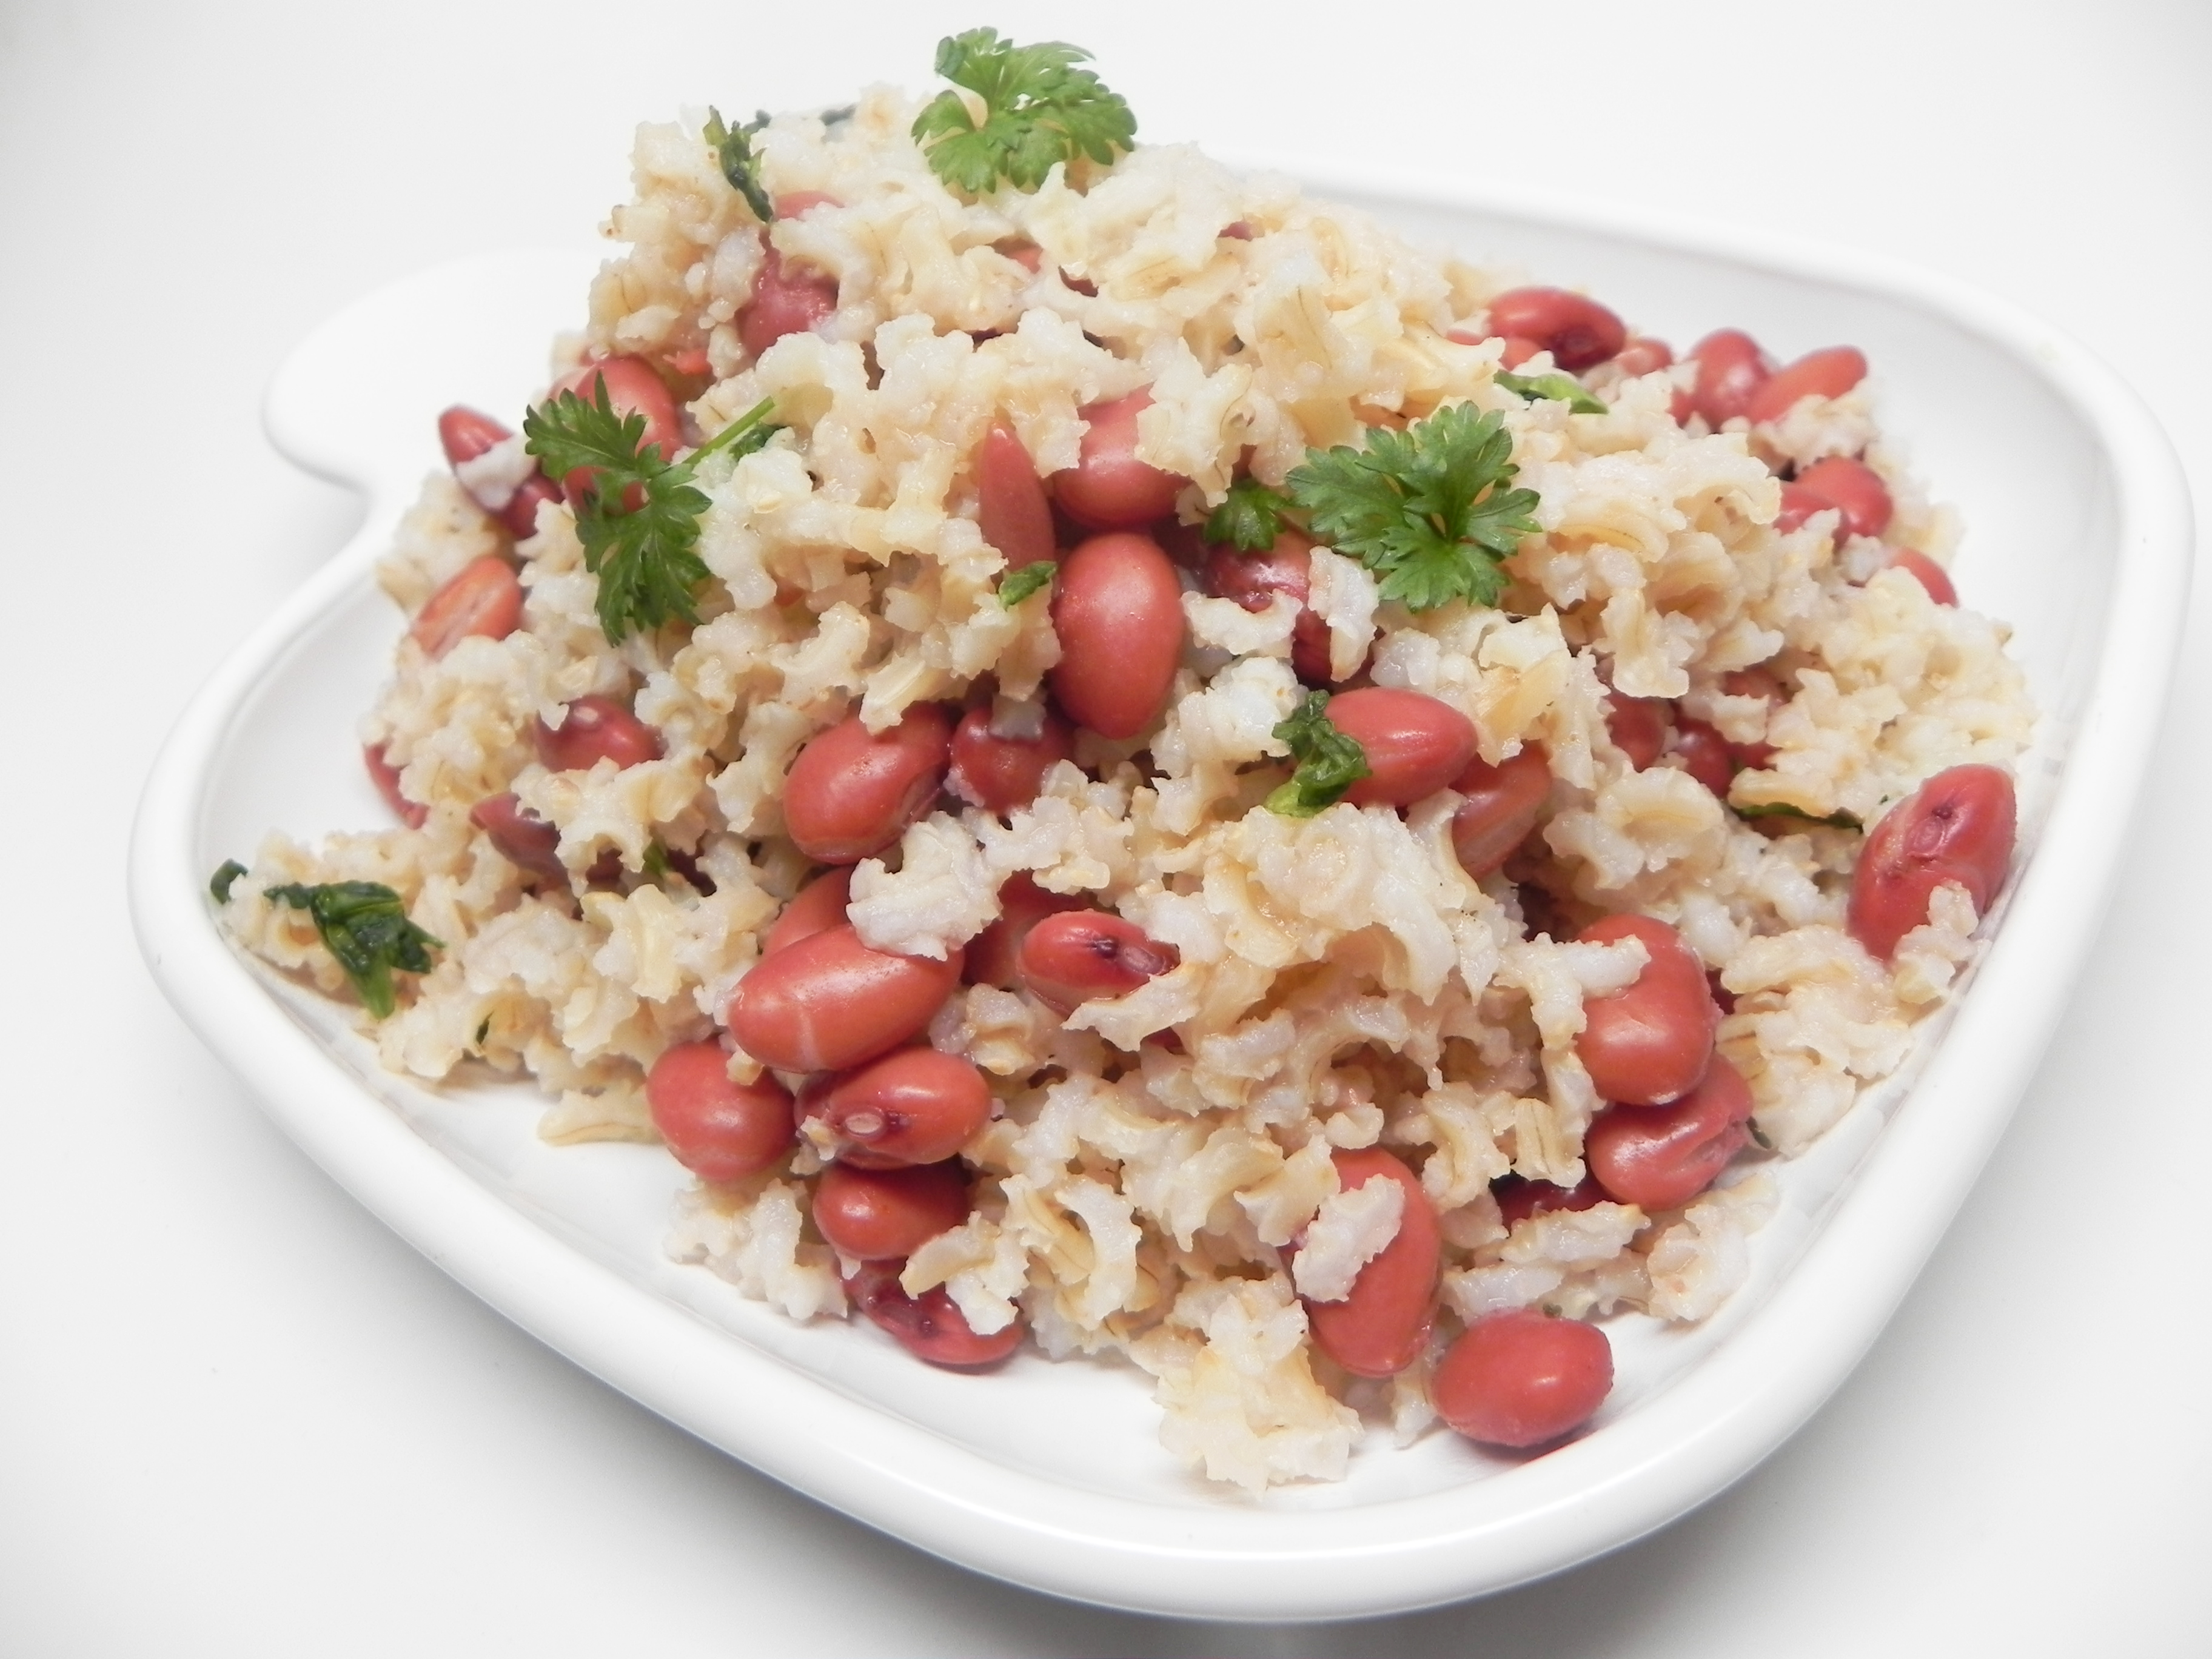 Try this meatless version of red beans and rice kicked up with Creole seasoning. The recipe calls for chicken stock concentrate, but you could easily substitute vegetarian bouillon instead.